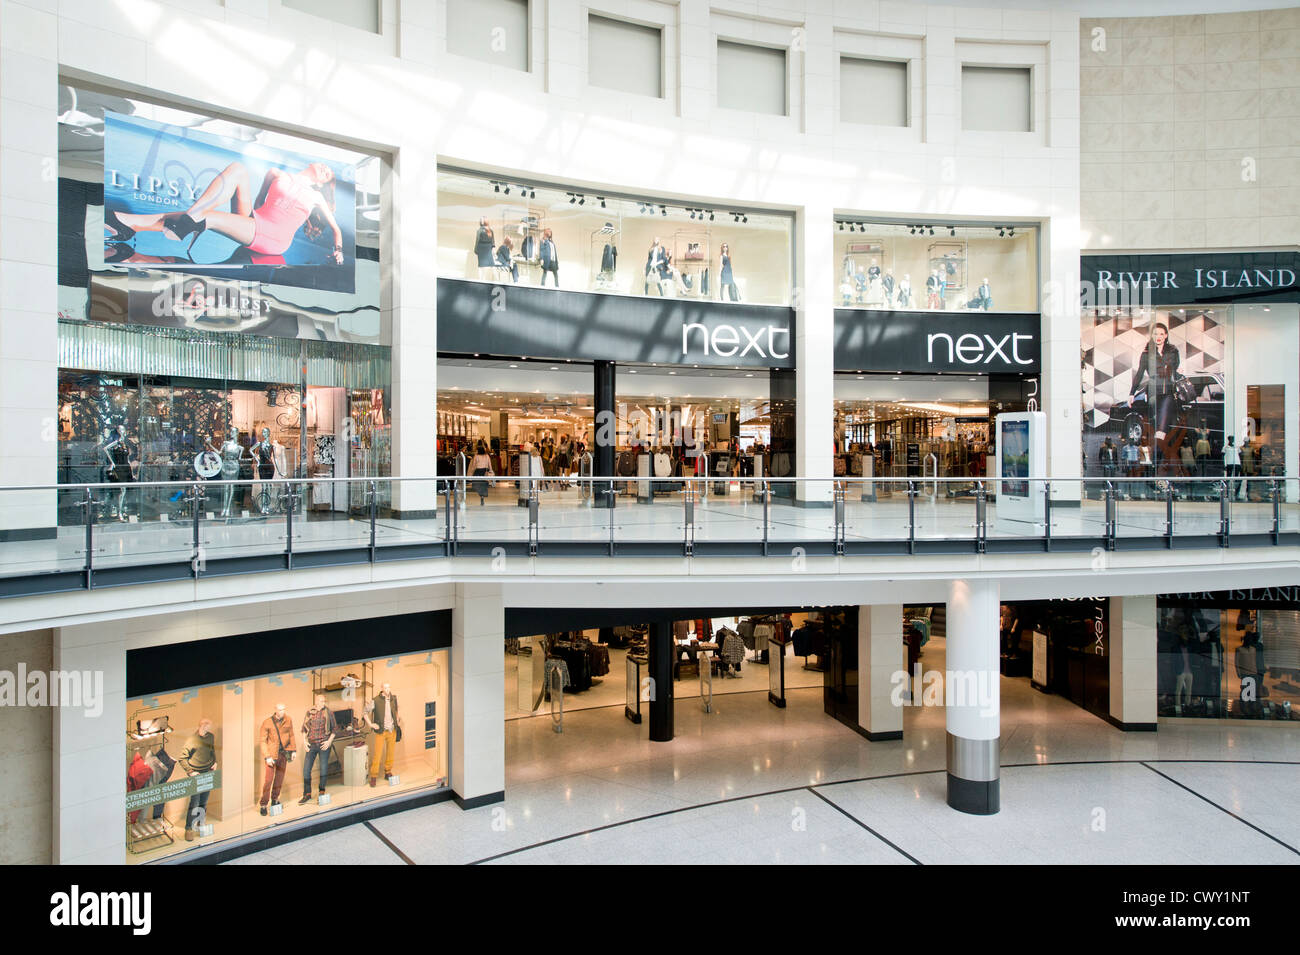 An indoor shot of the entrance / storefront of the Next flagship store in Manchester Arndale Centre. - Stock Image